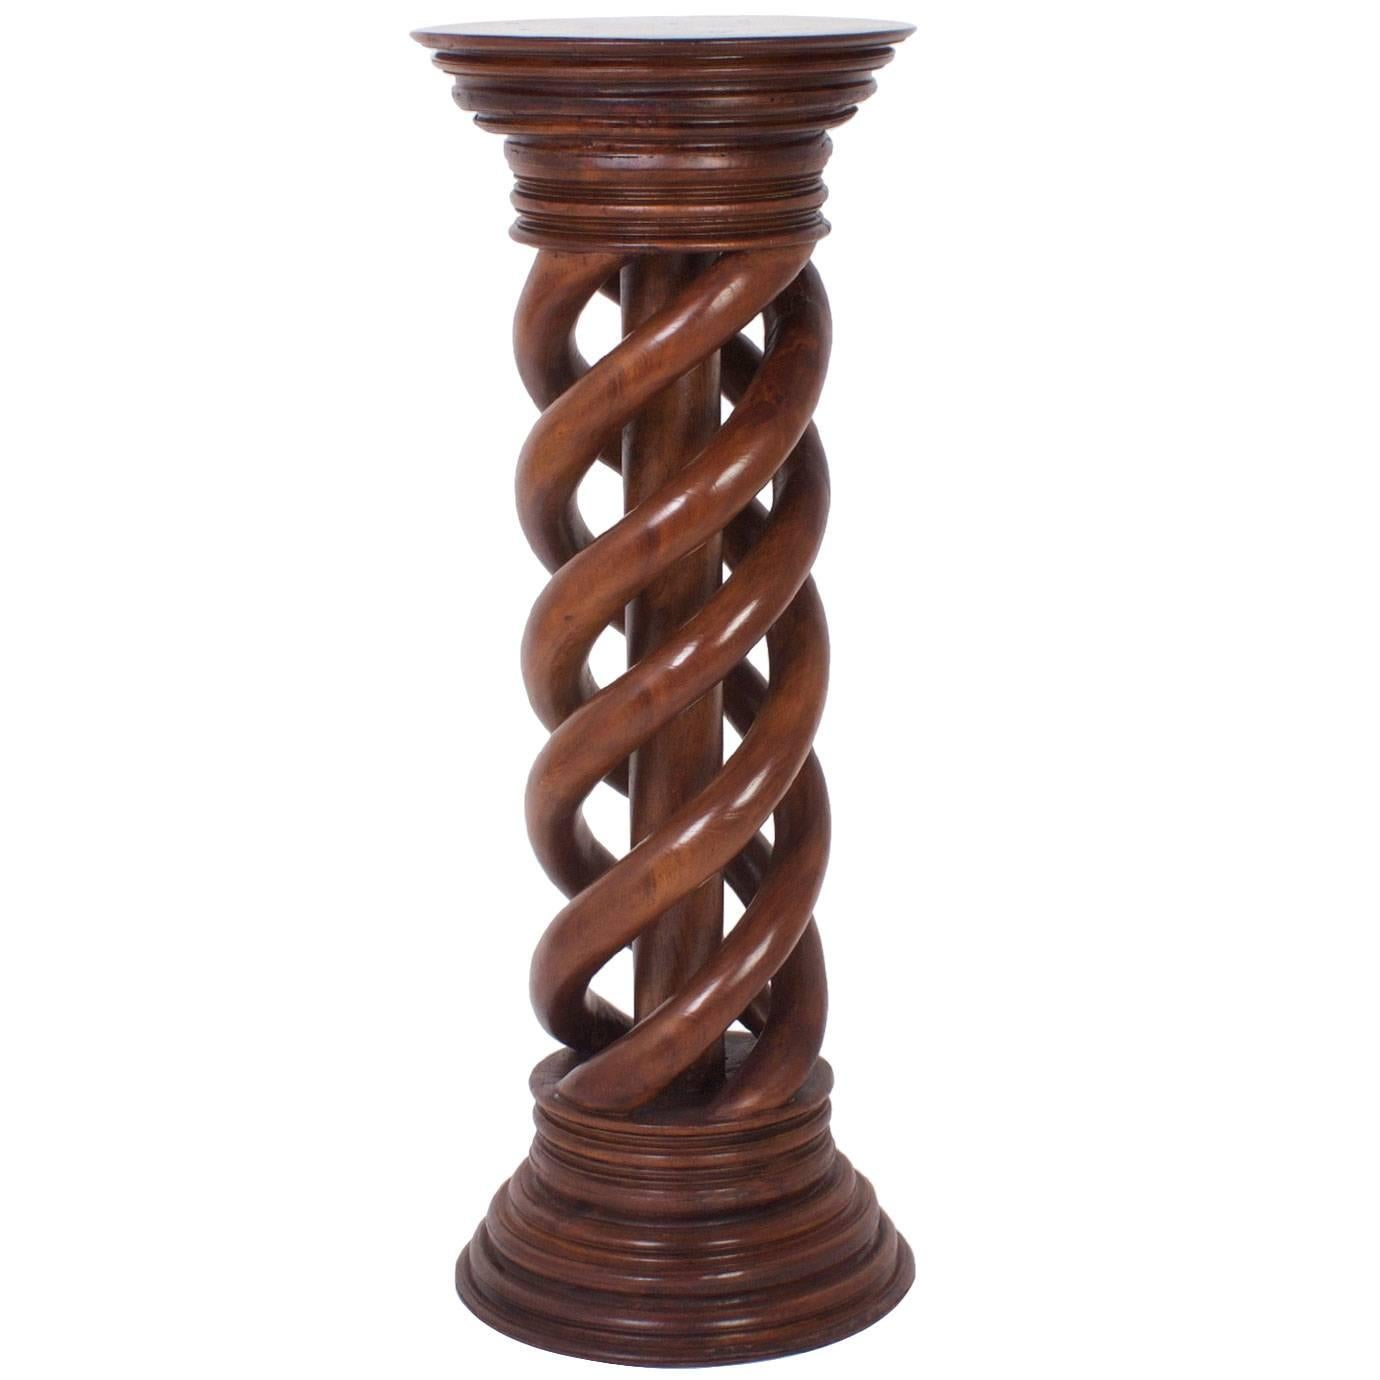 Antique 19th Century Large Spiral Carved Mahogany Pedestal